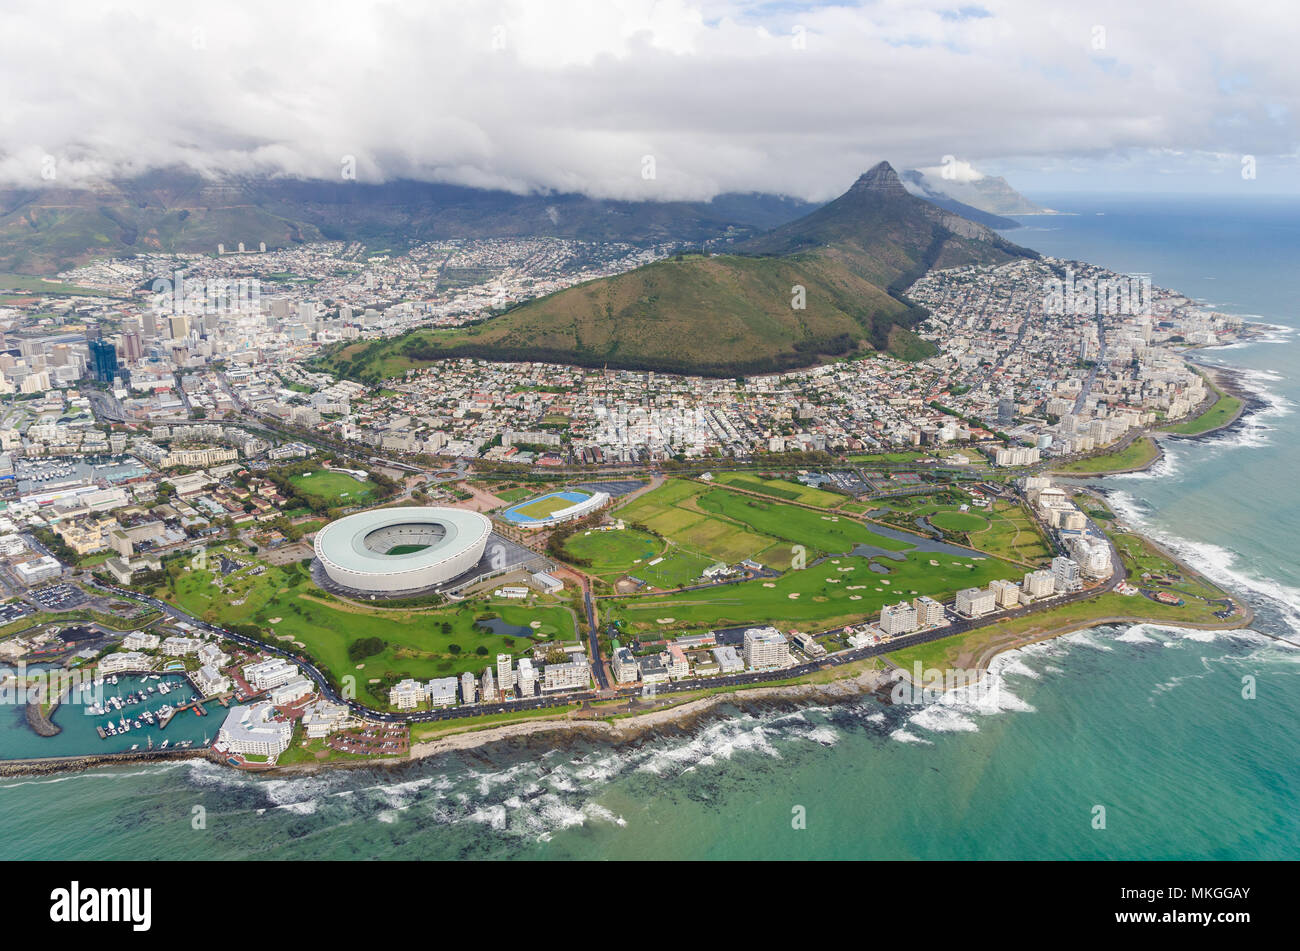 Aerial view of Cape Town, South Africa - Stock Image